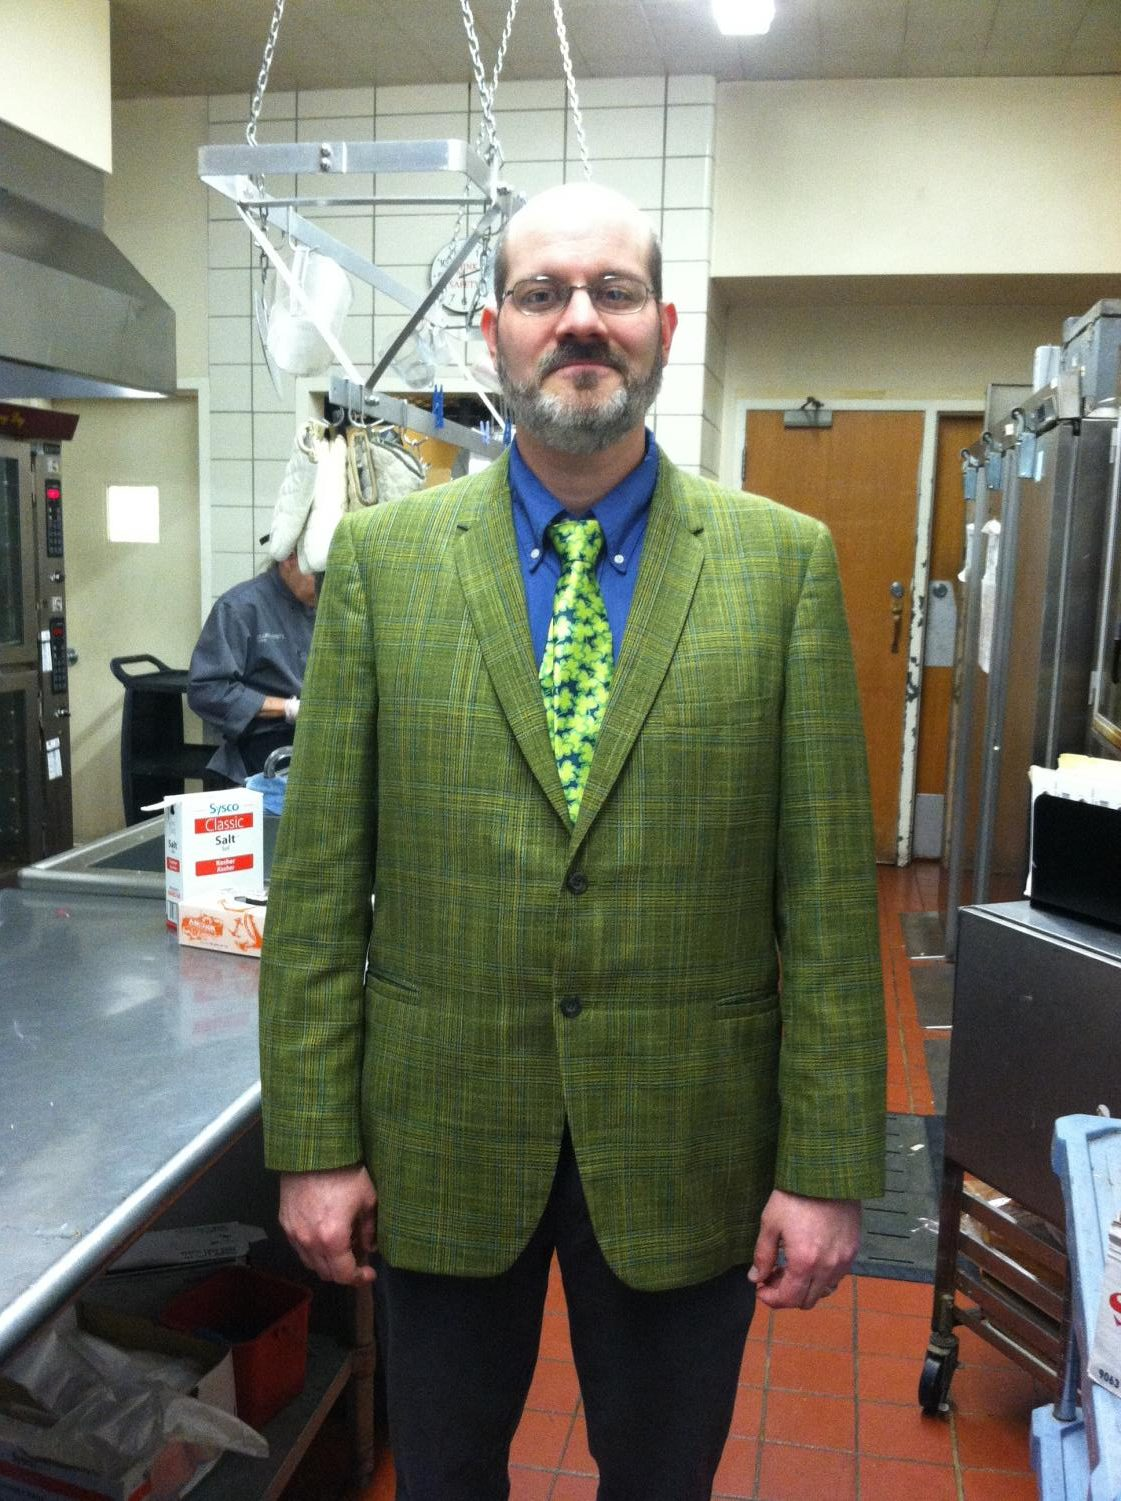 Chad Pramuk in His St. Patty's Day Sports Jacket